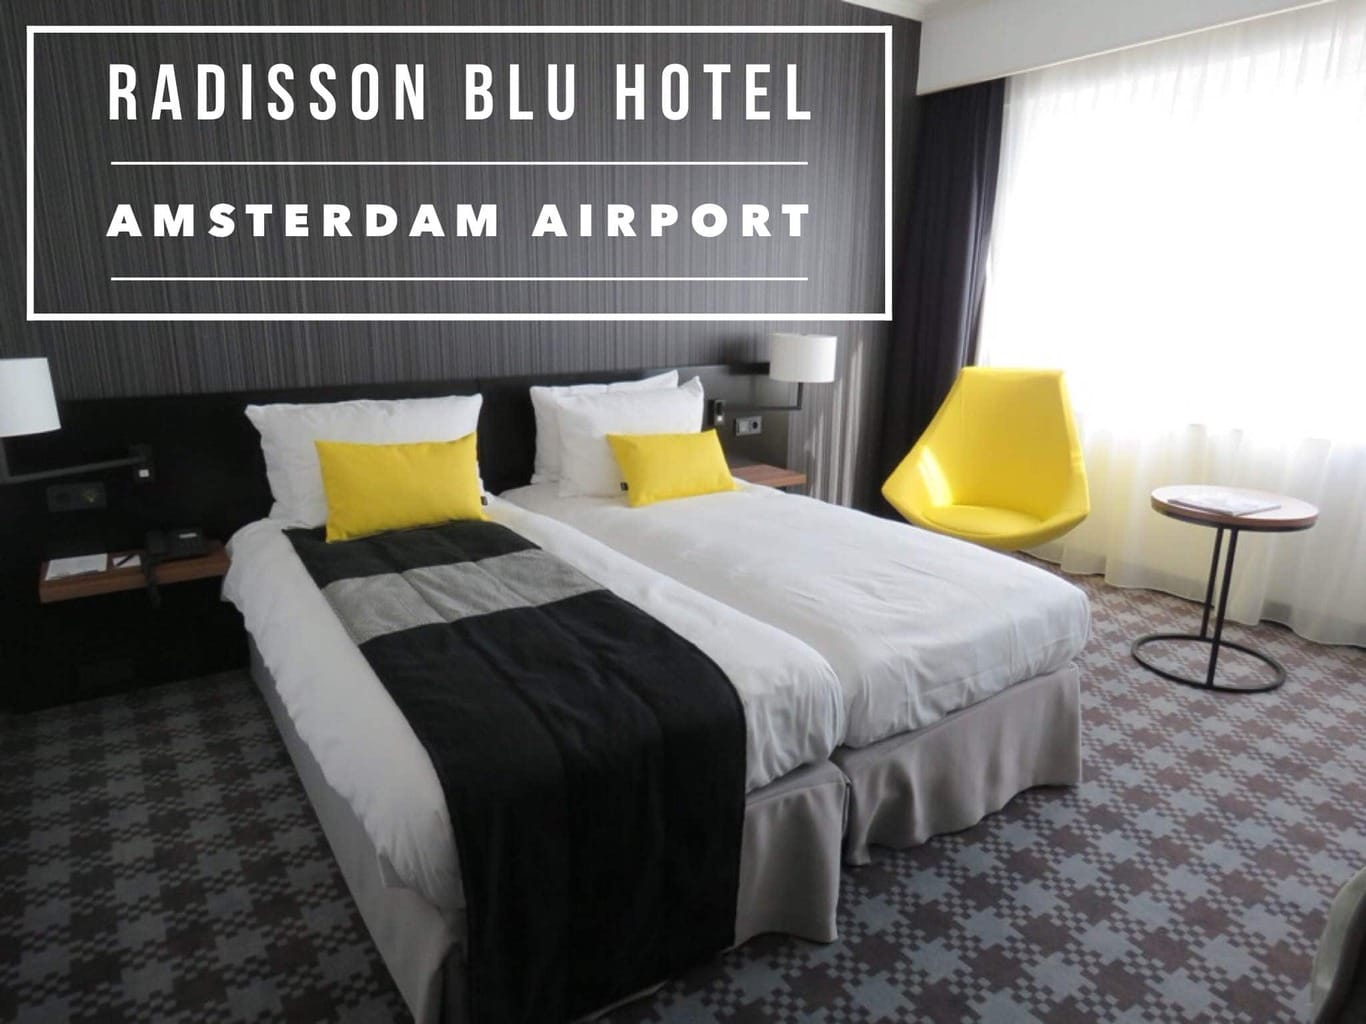 Radisson Blu Amsterdam Schiphol Airport Hotel Review - Kim and Carrie